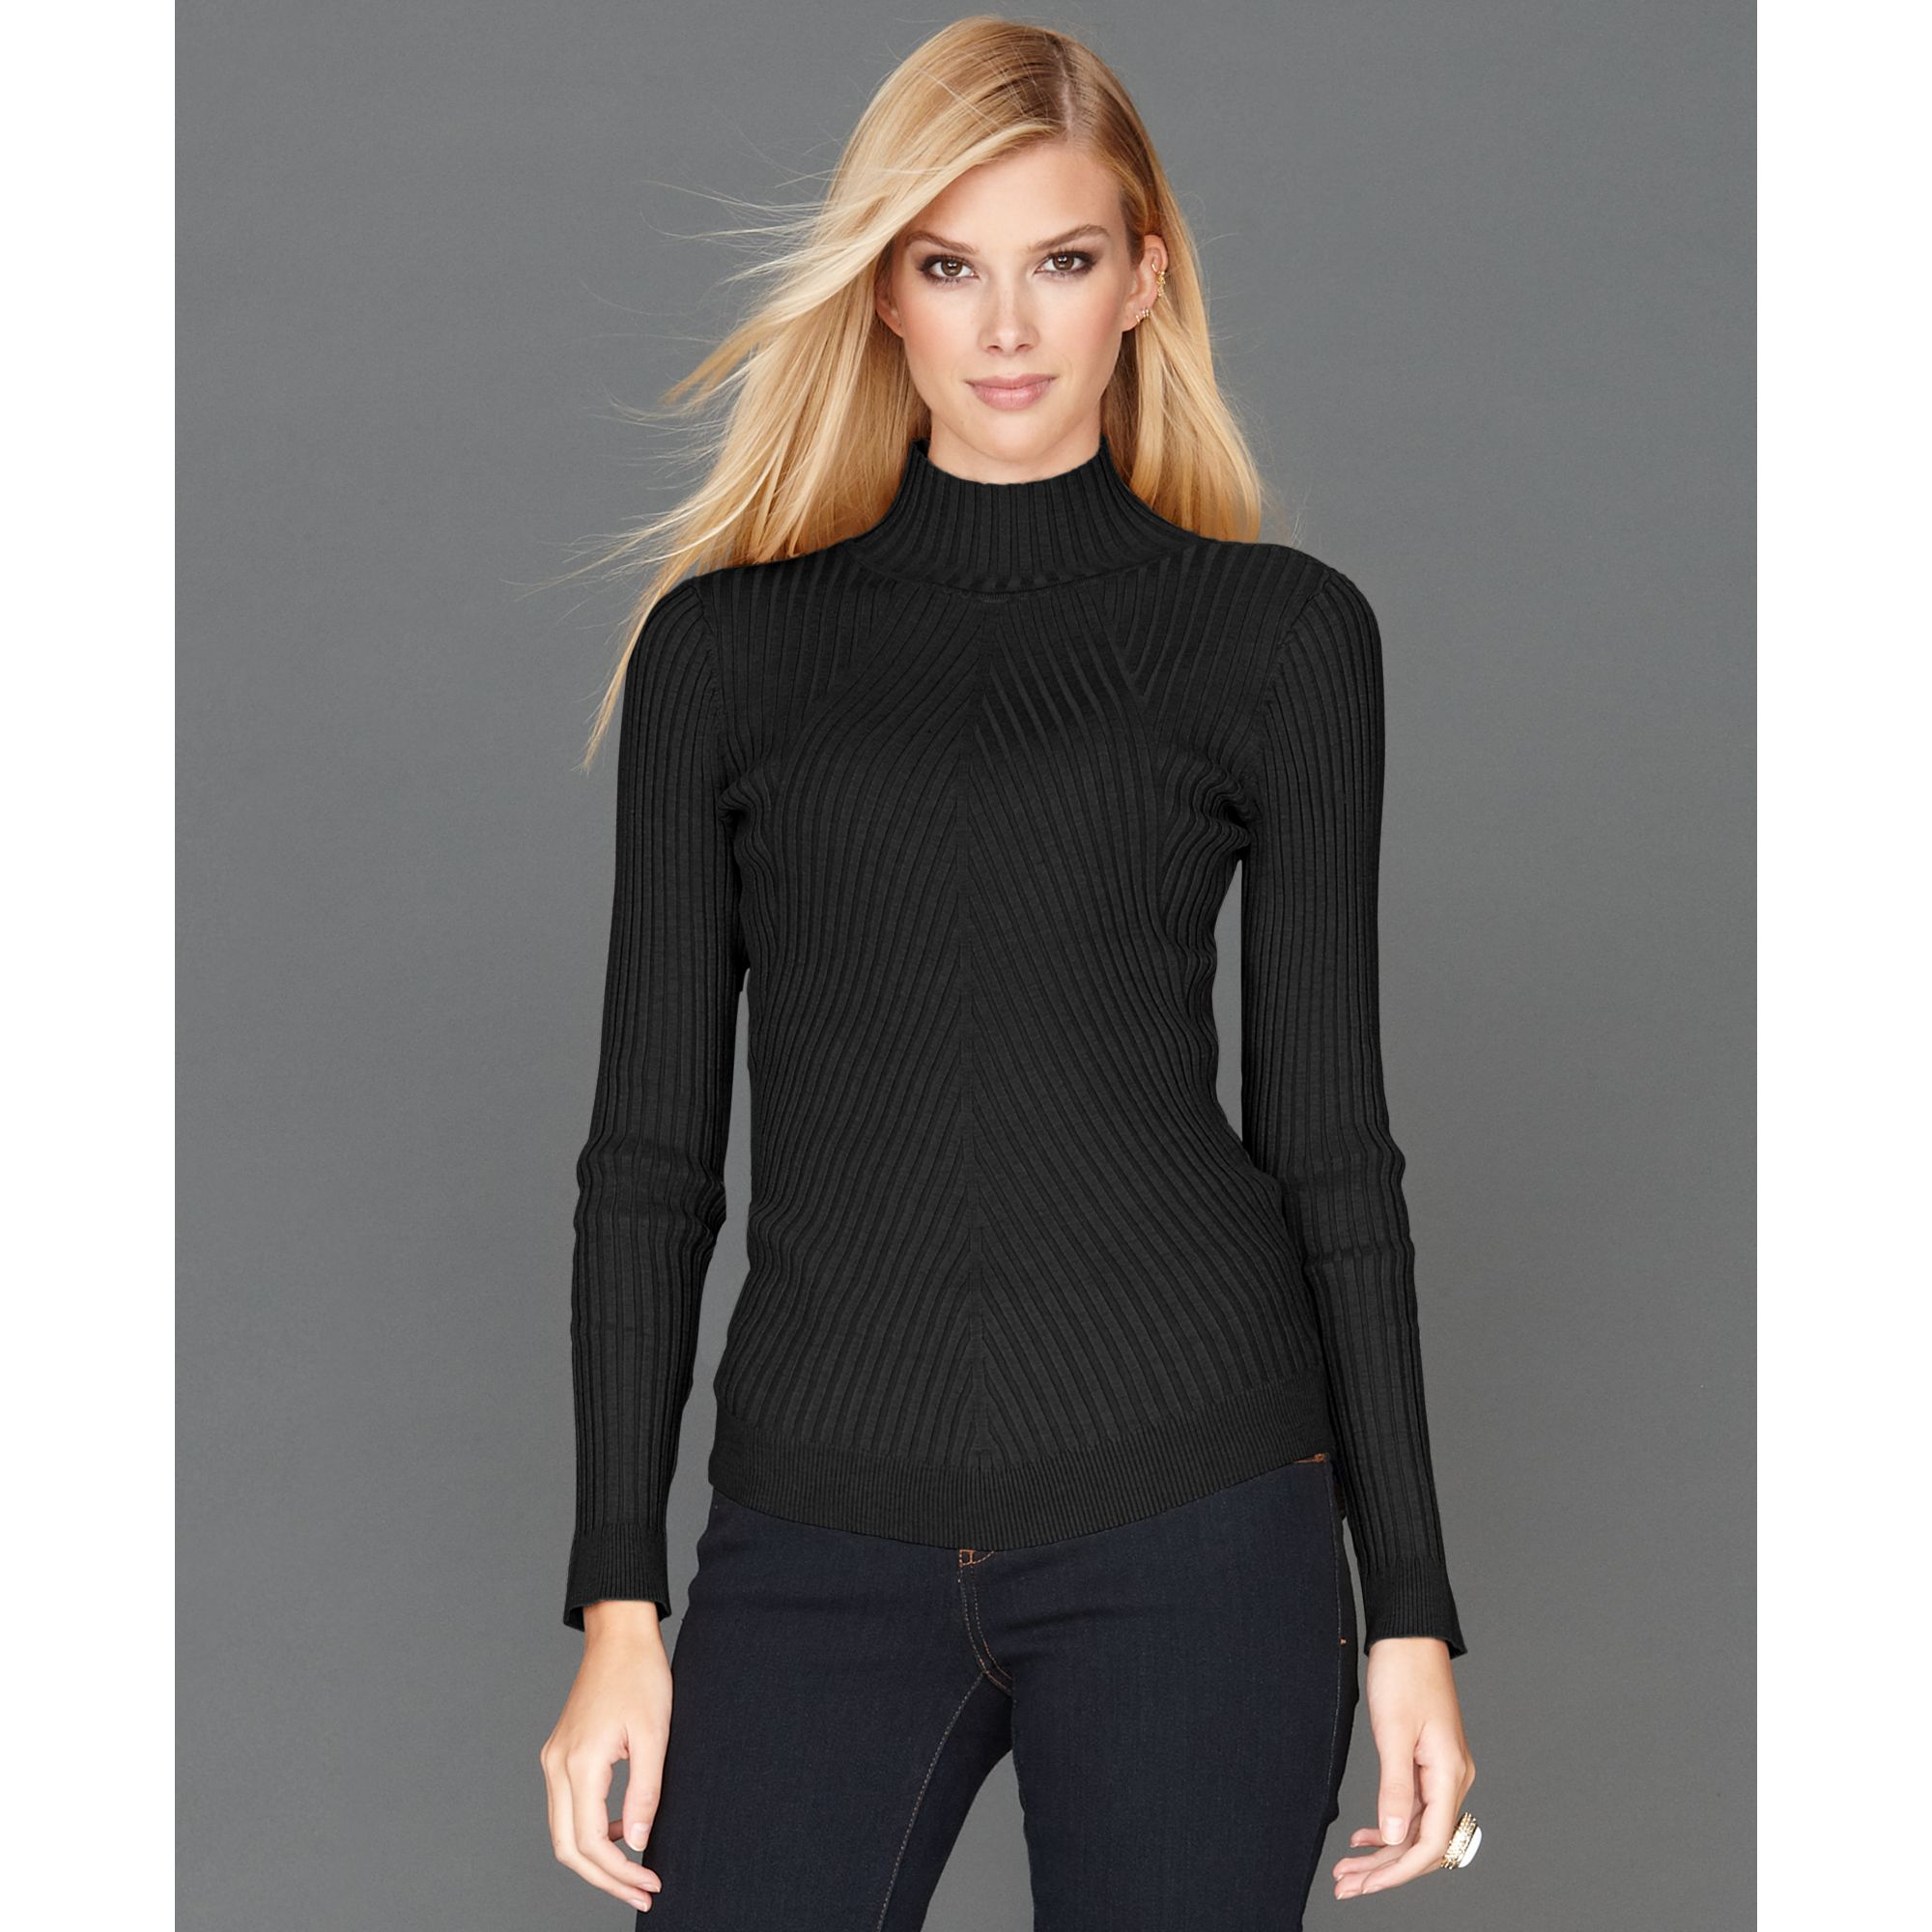 black turtlenecks remind me of Meg Ryan in You've Got Mail. Find this Pin and more on Style by Michelle Holt. Who doesn't love a fitted black turtleneck? Shop Women's Zara Black size S Cowl & Turtlenecks at a discounted price at Poshmark.